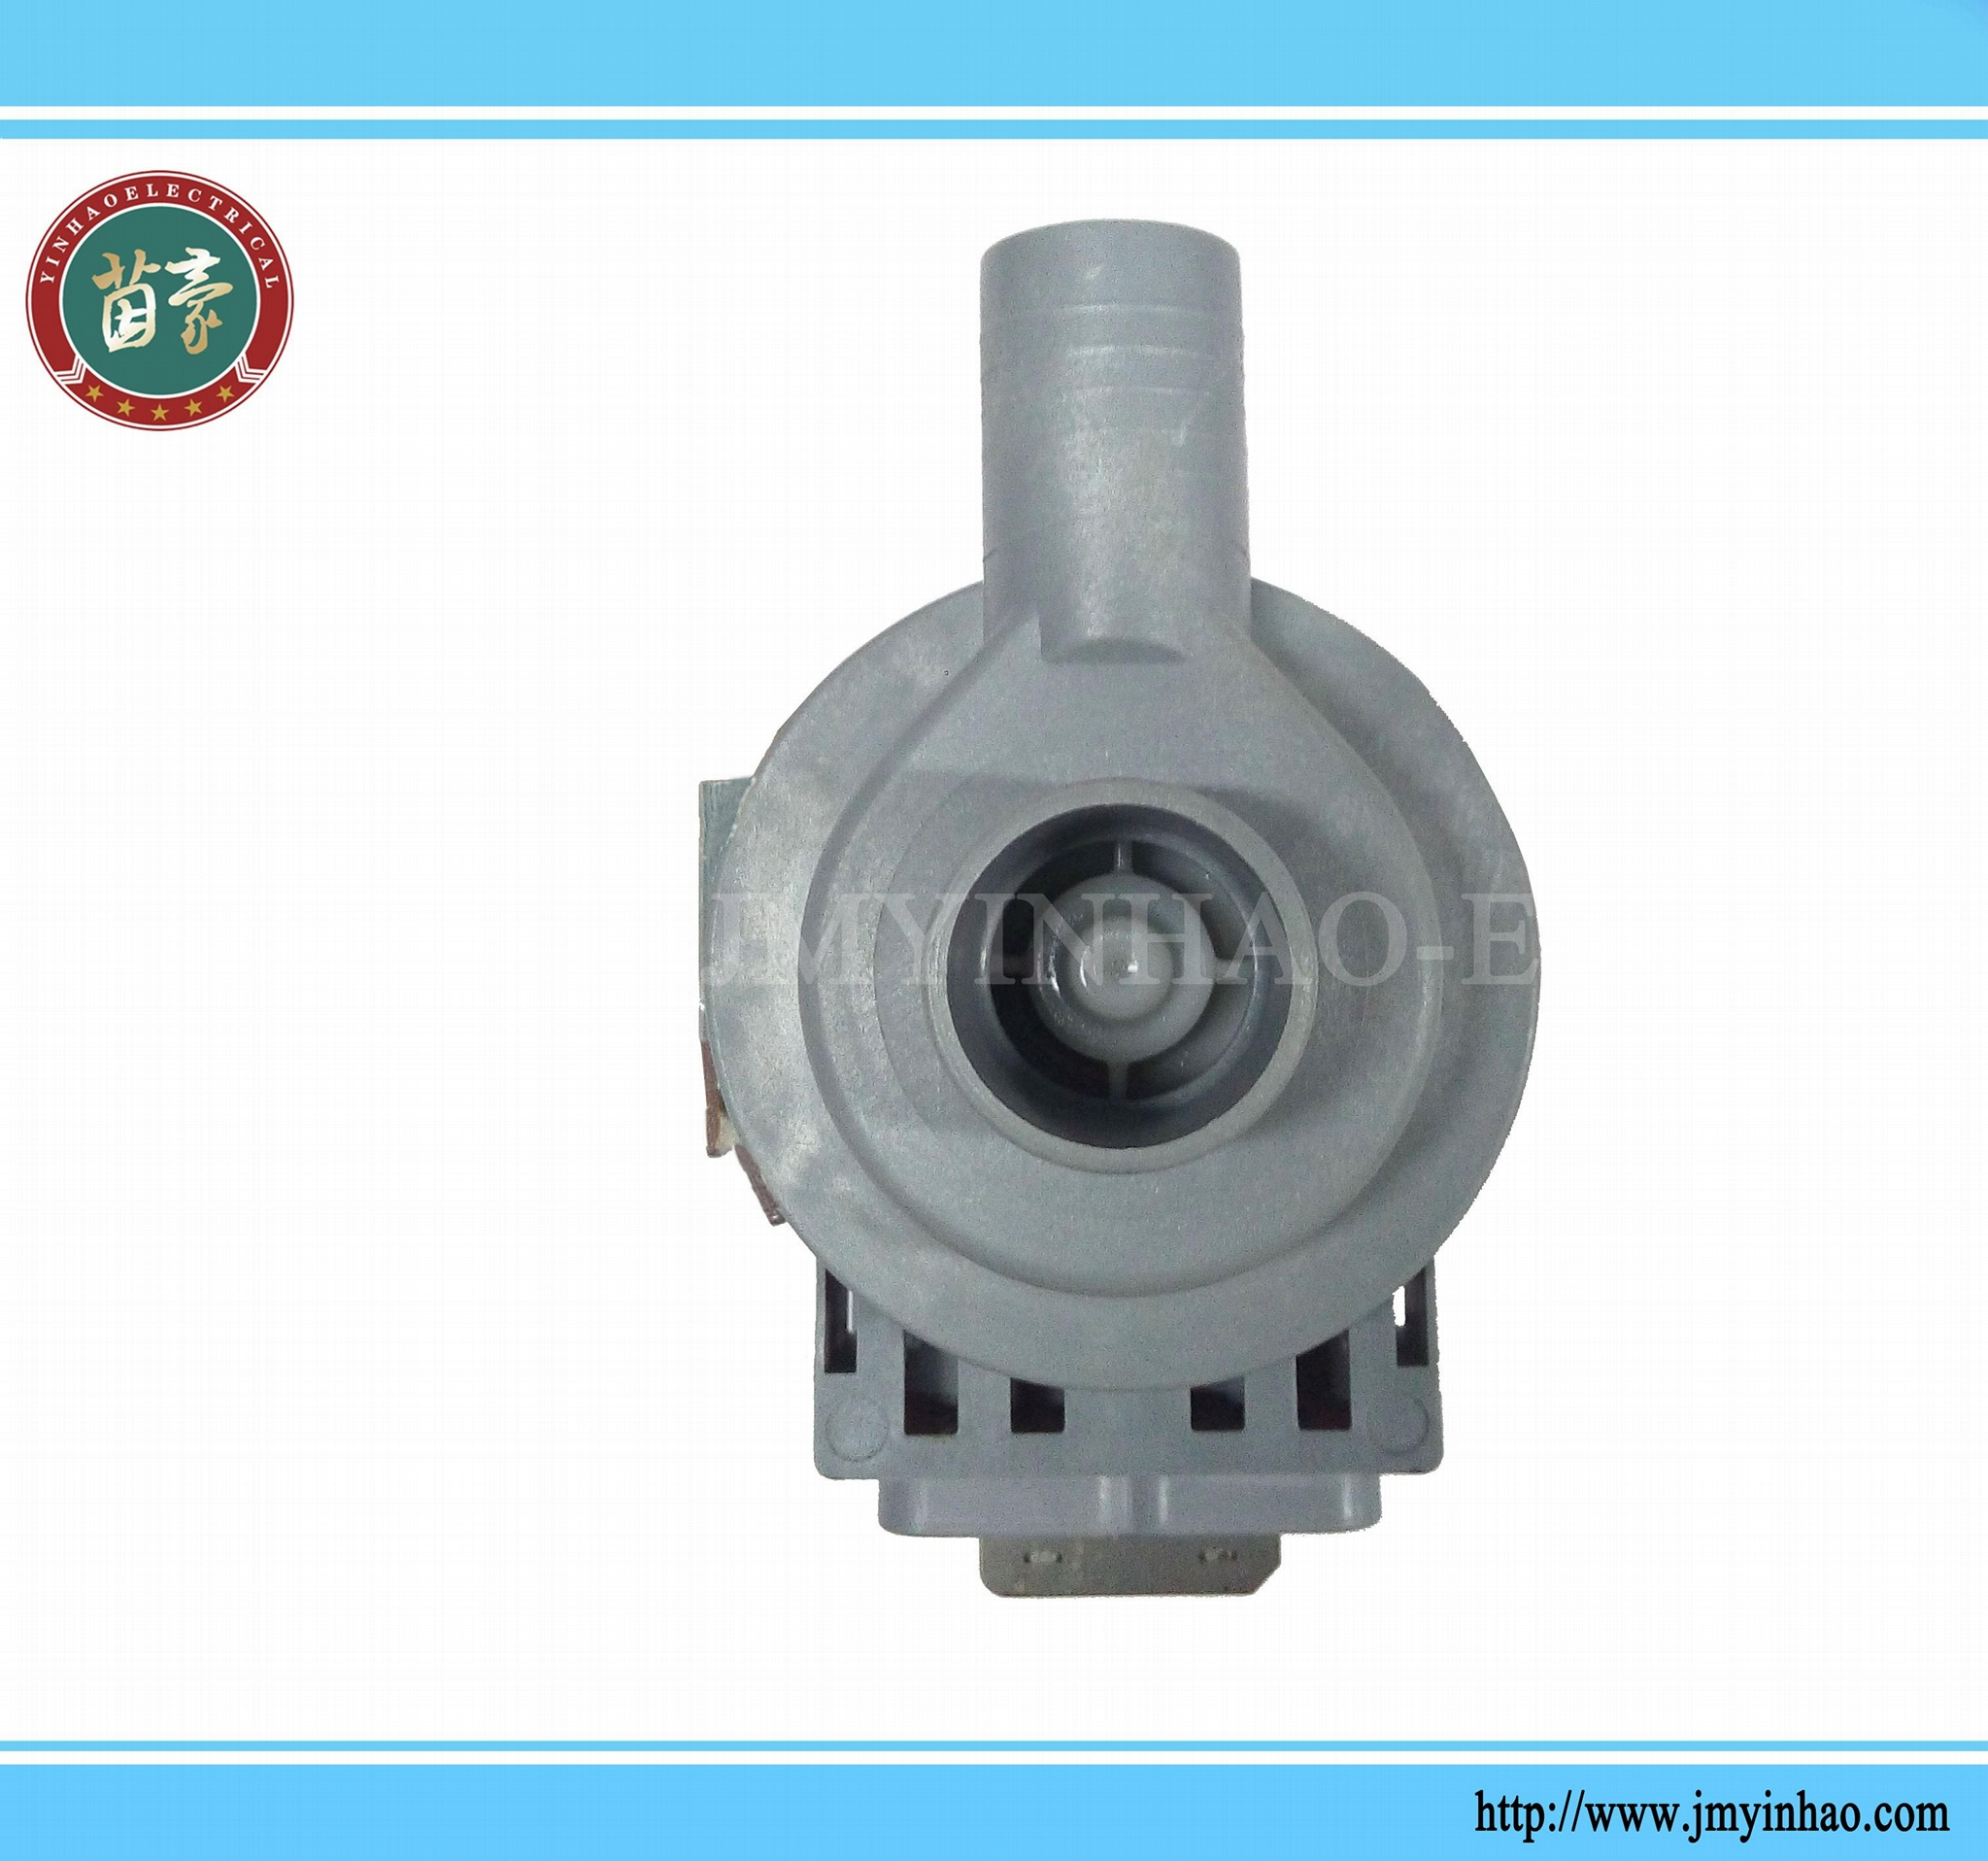 Drain Pump for Whirlpool W10276397 Washer AP4514539 PS2580215 4